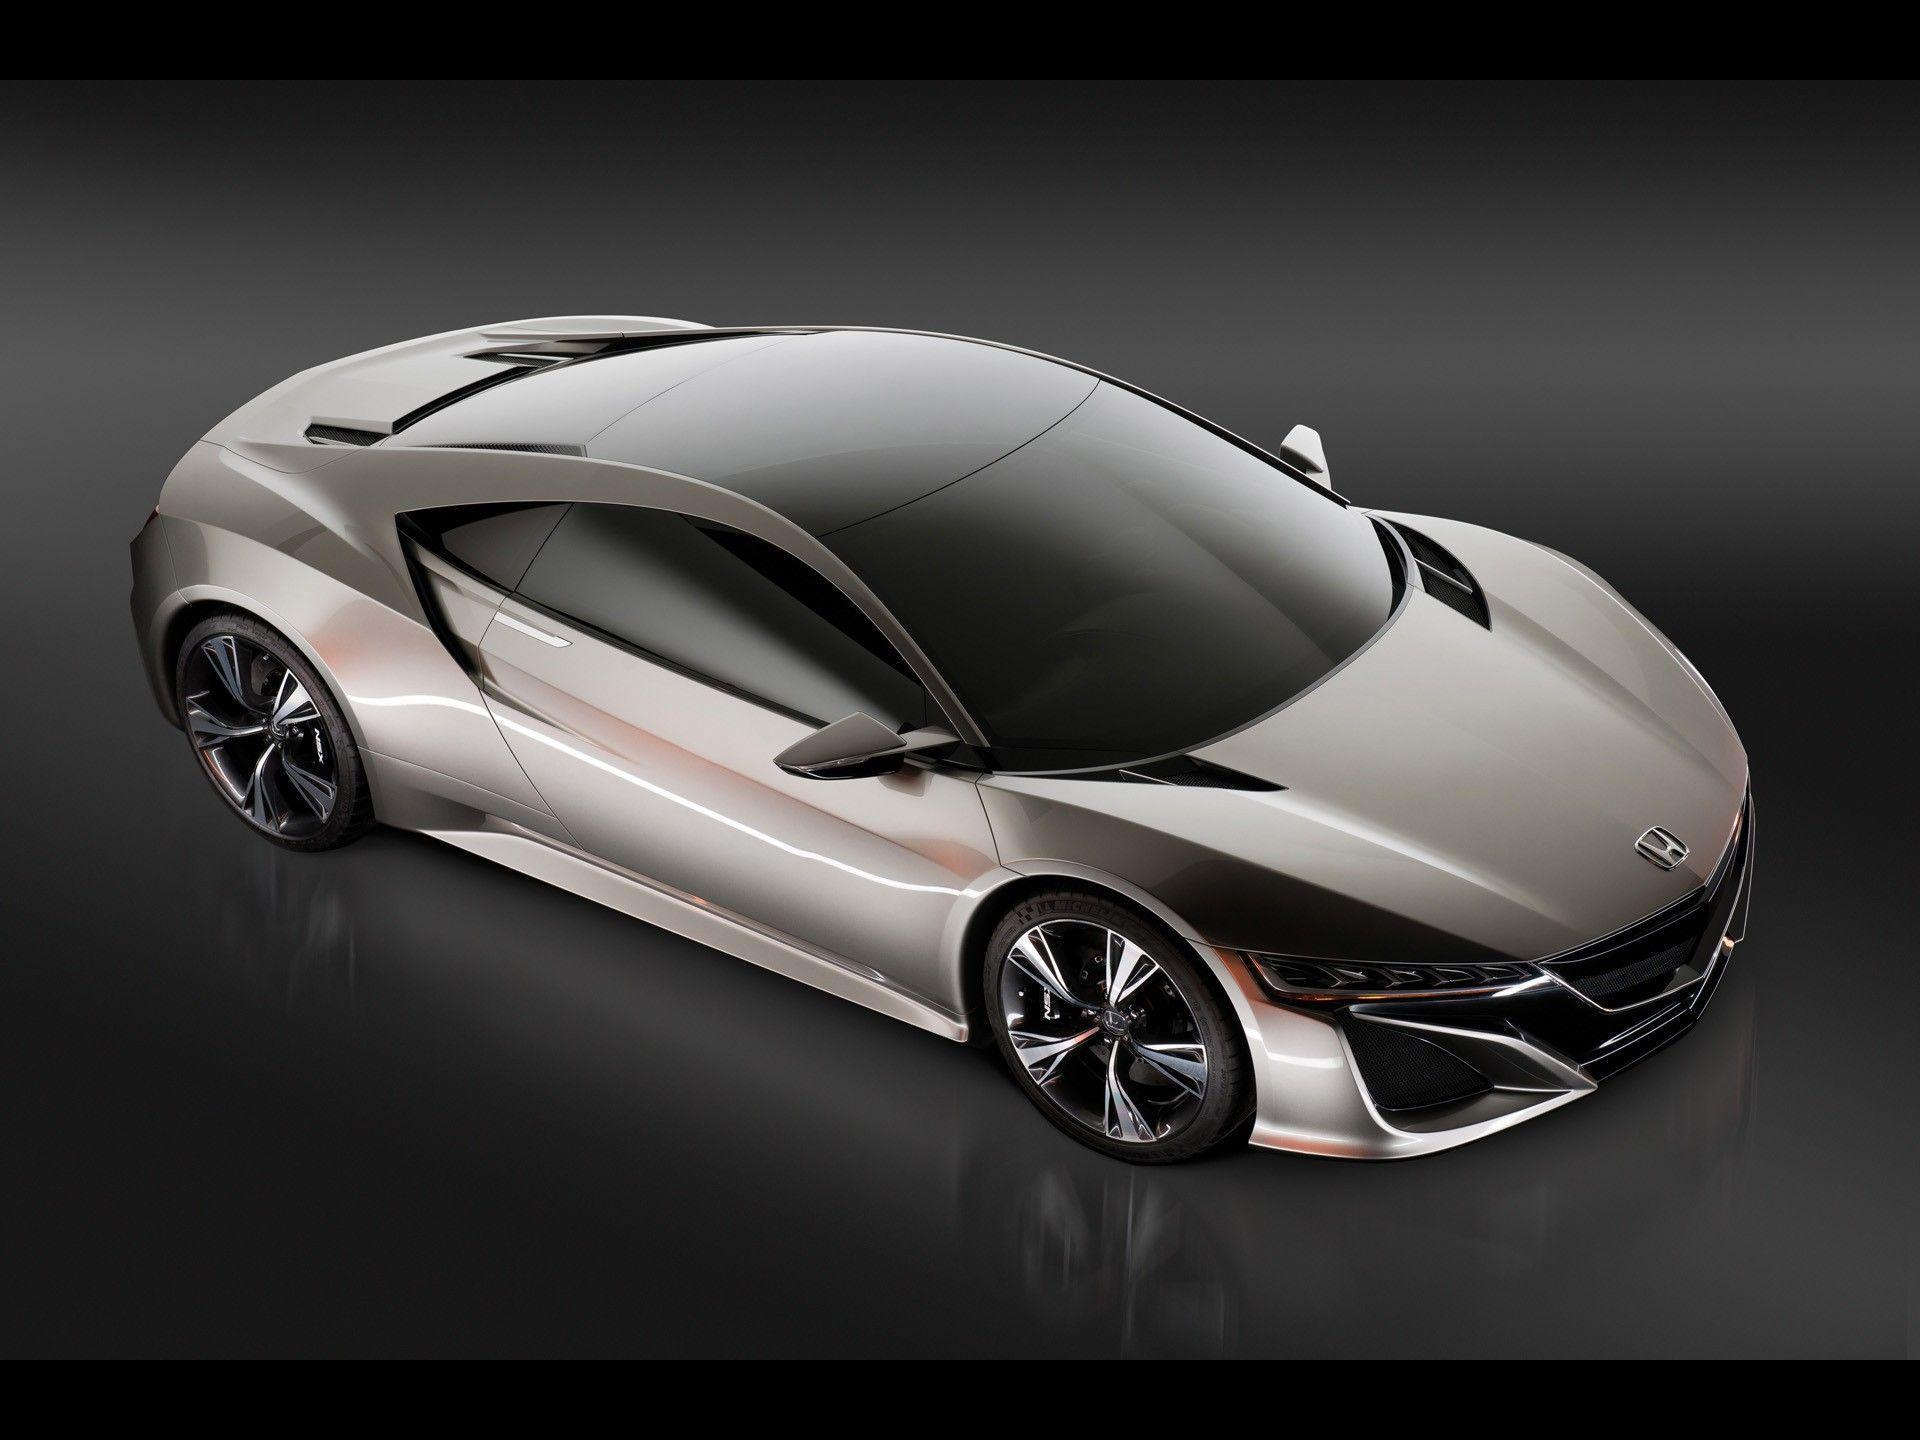 New-models-honda-motor-car-wallpapers